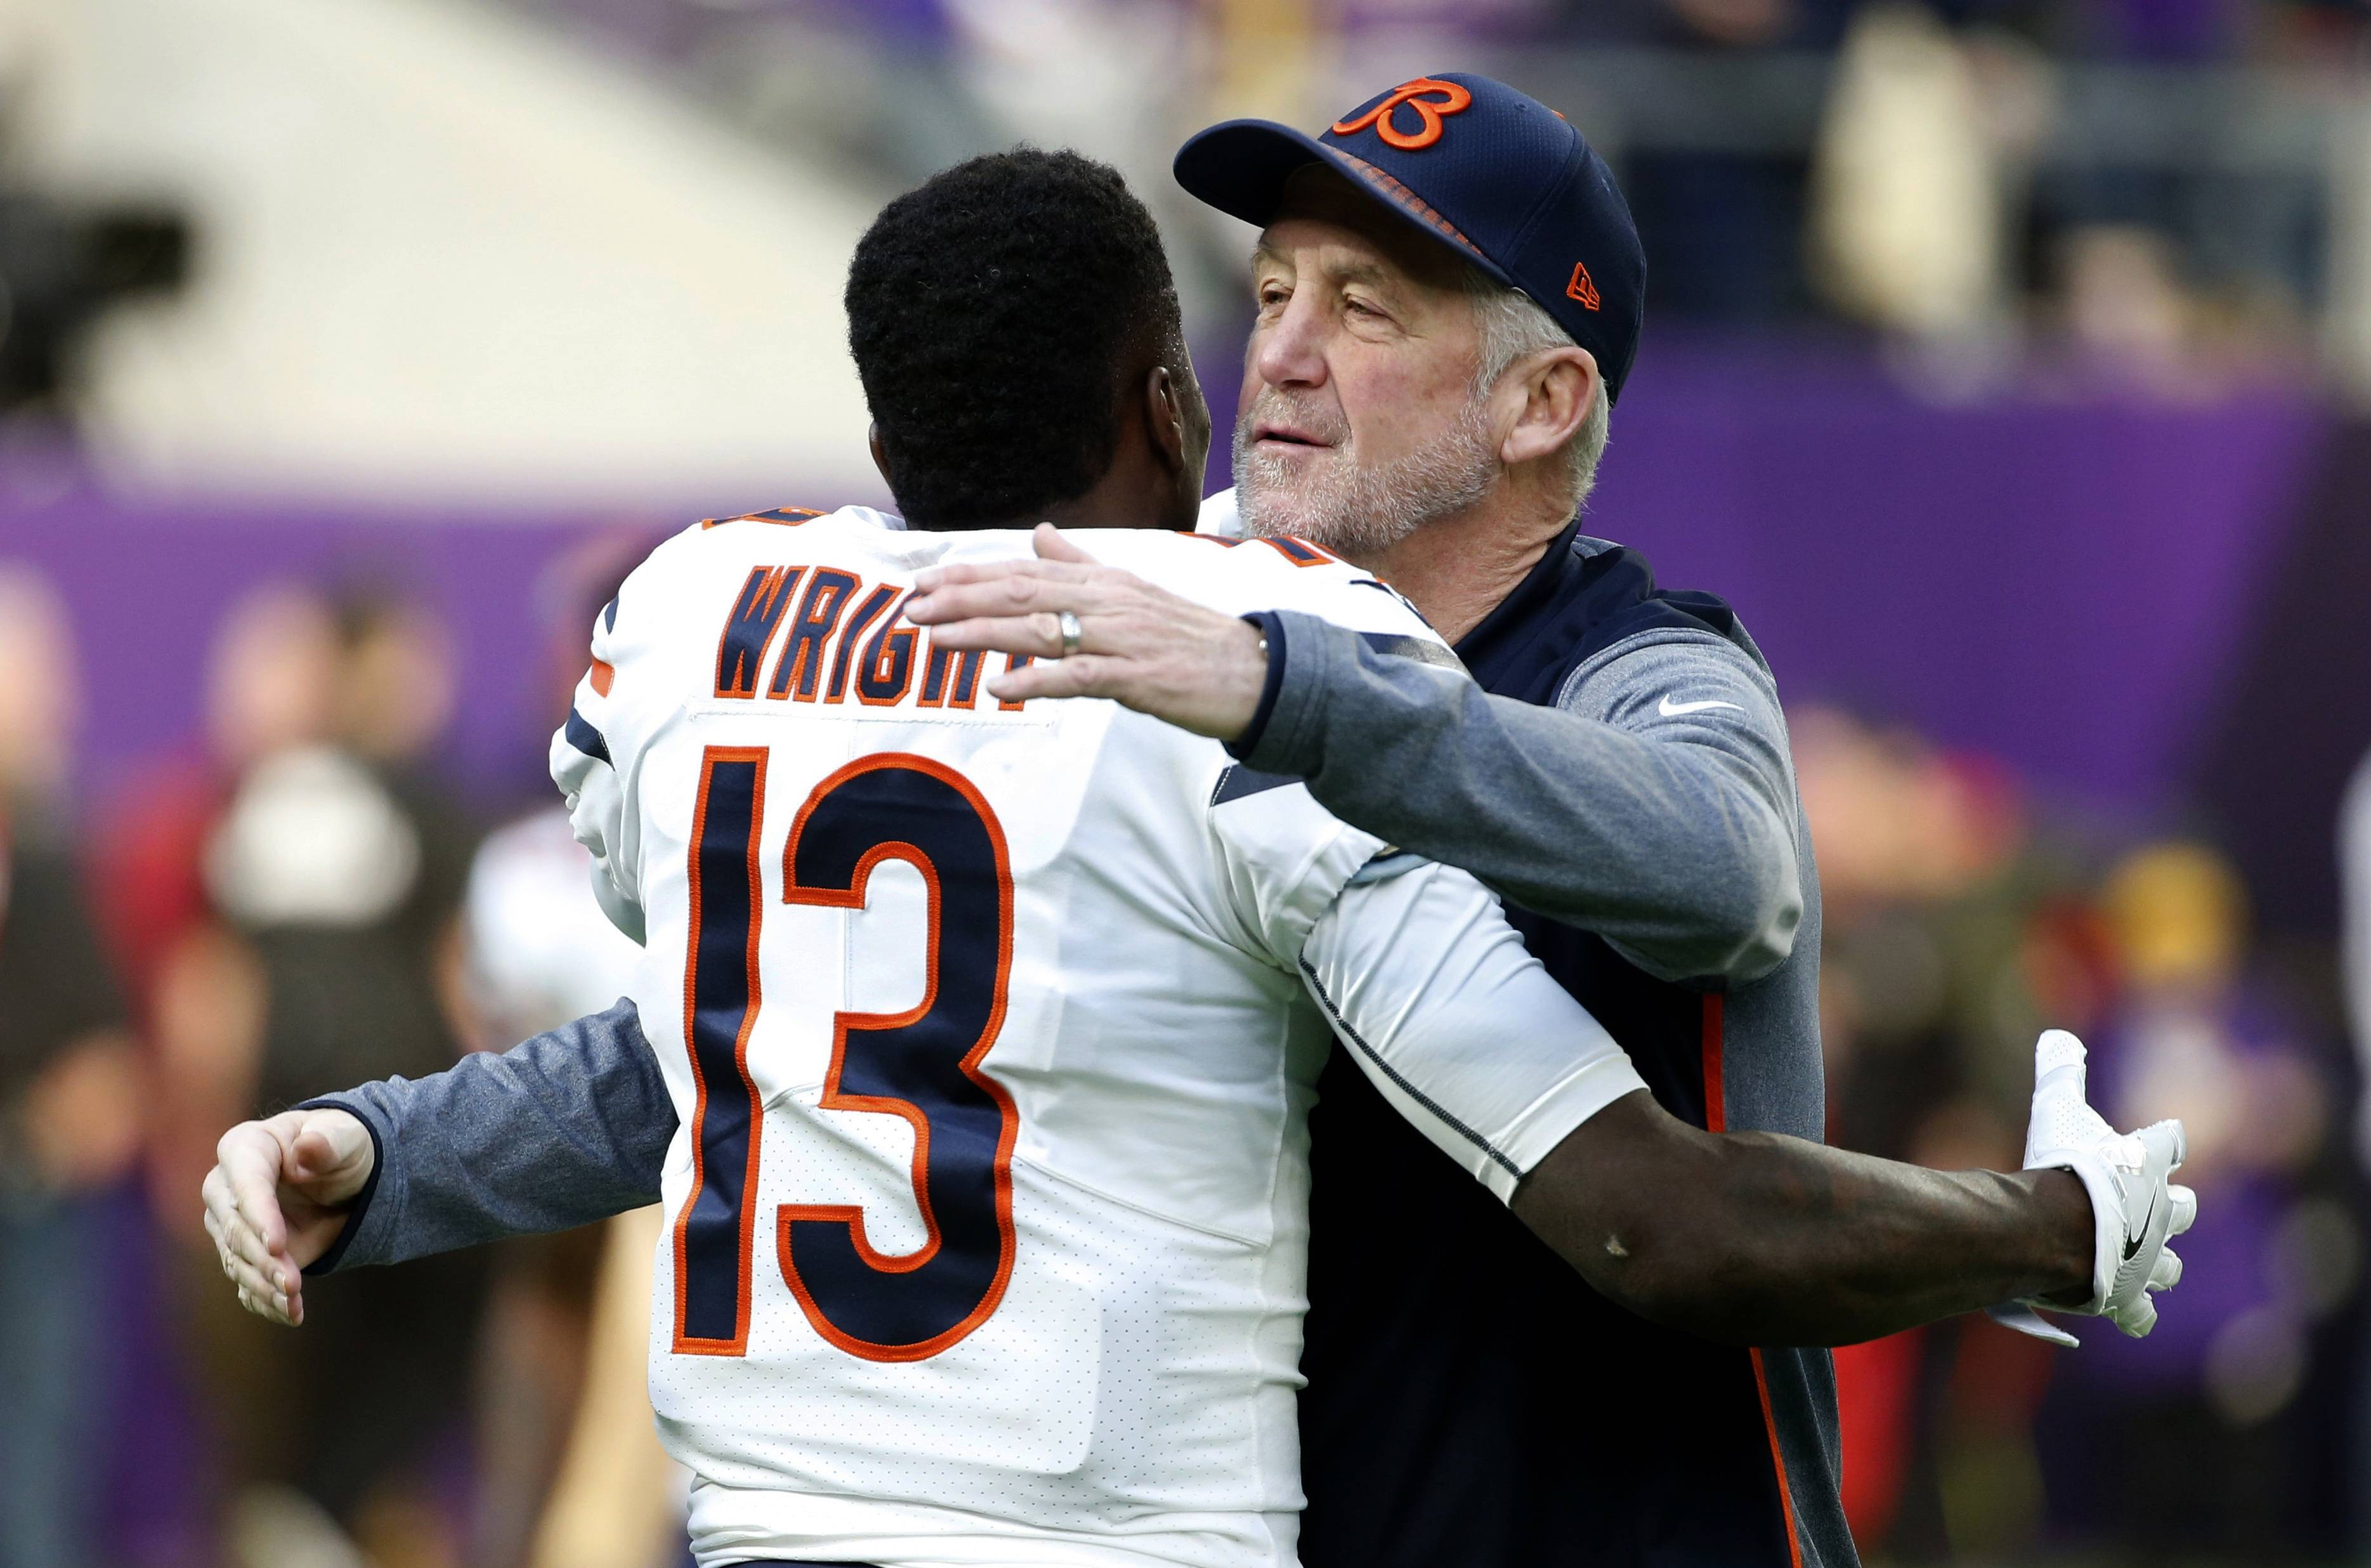 Images: Bears lose to the Vikings in the final game of the season